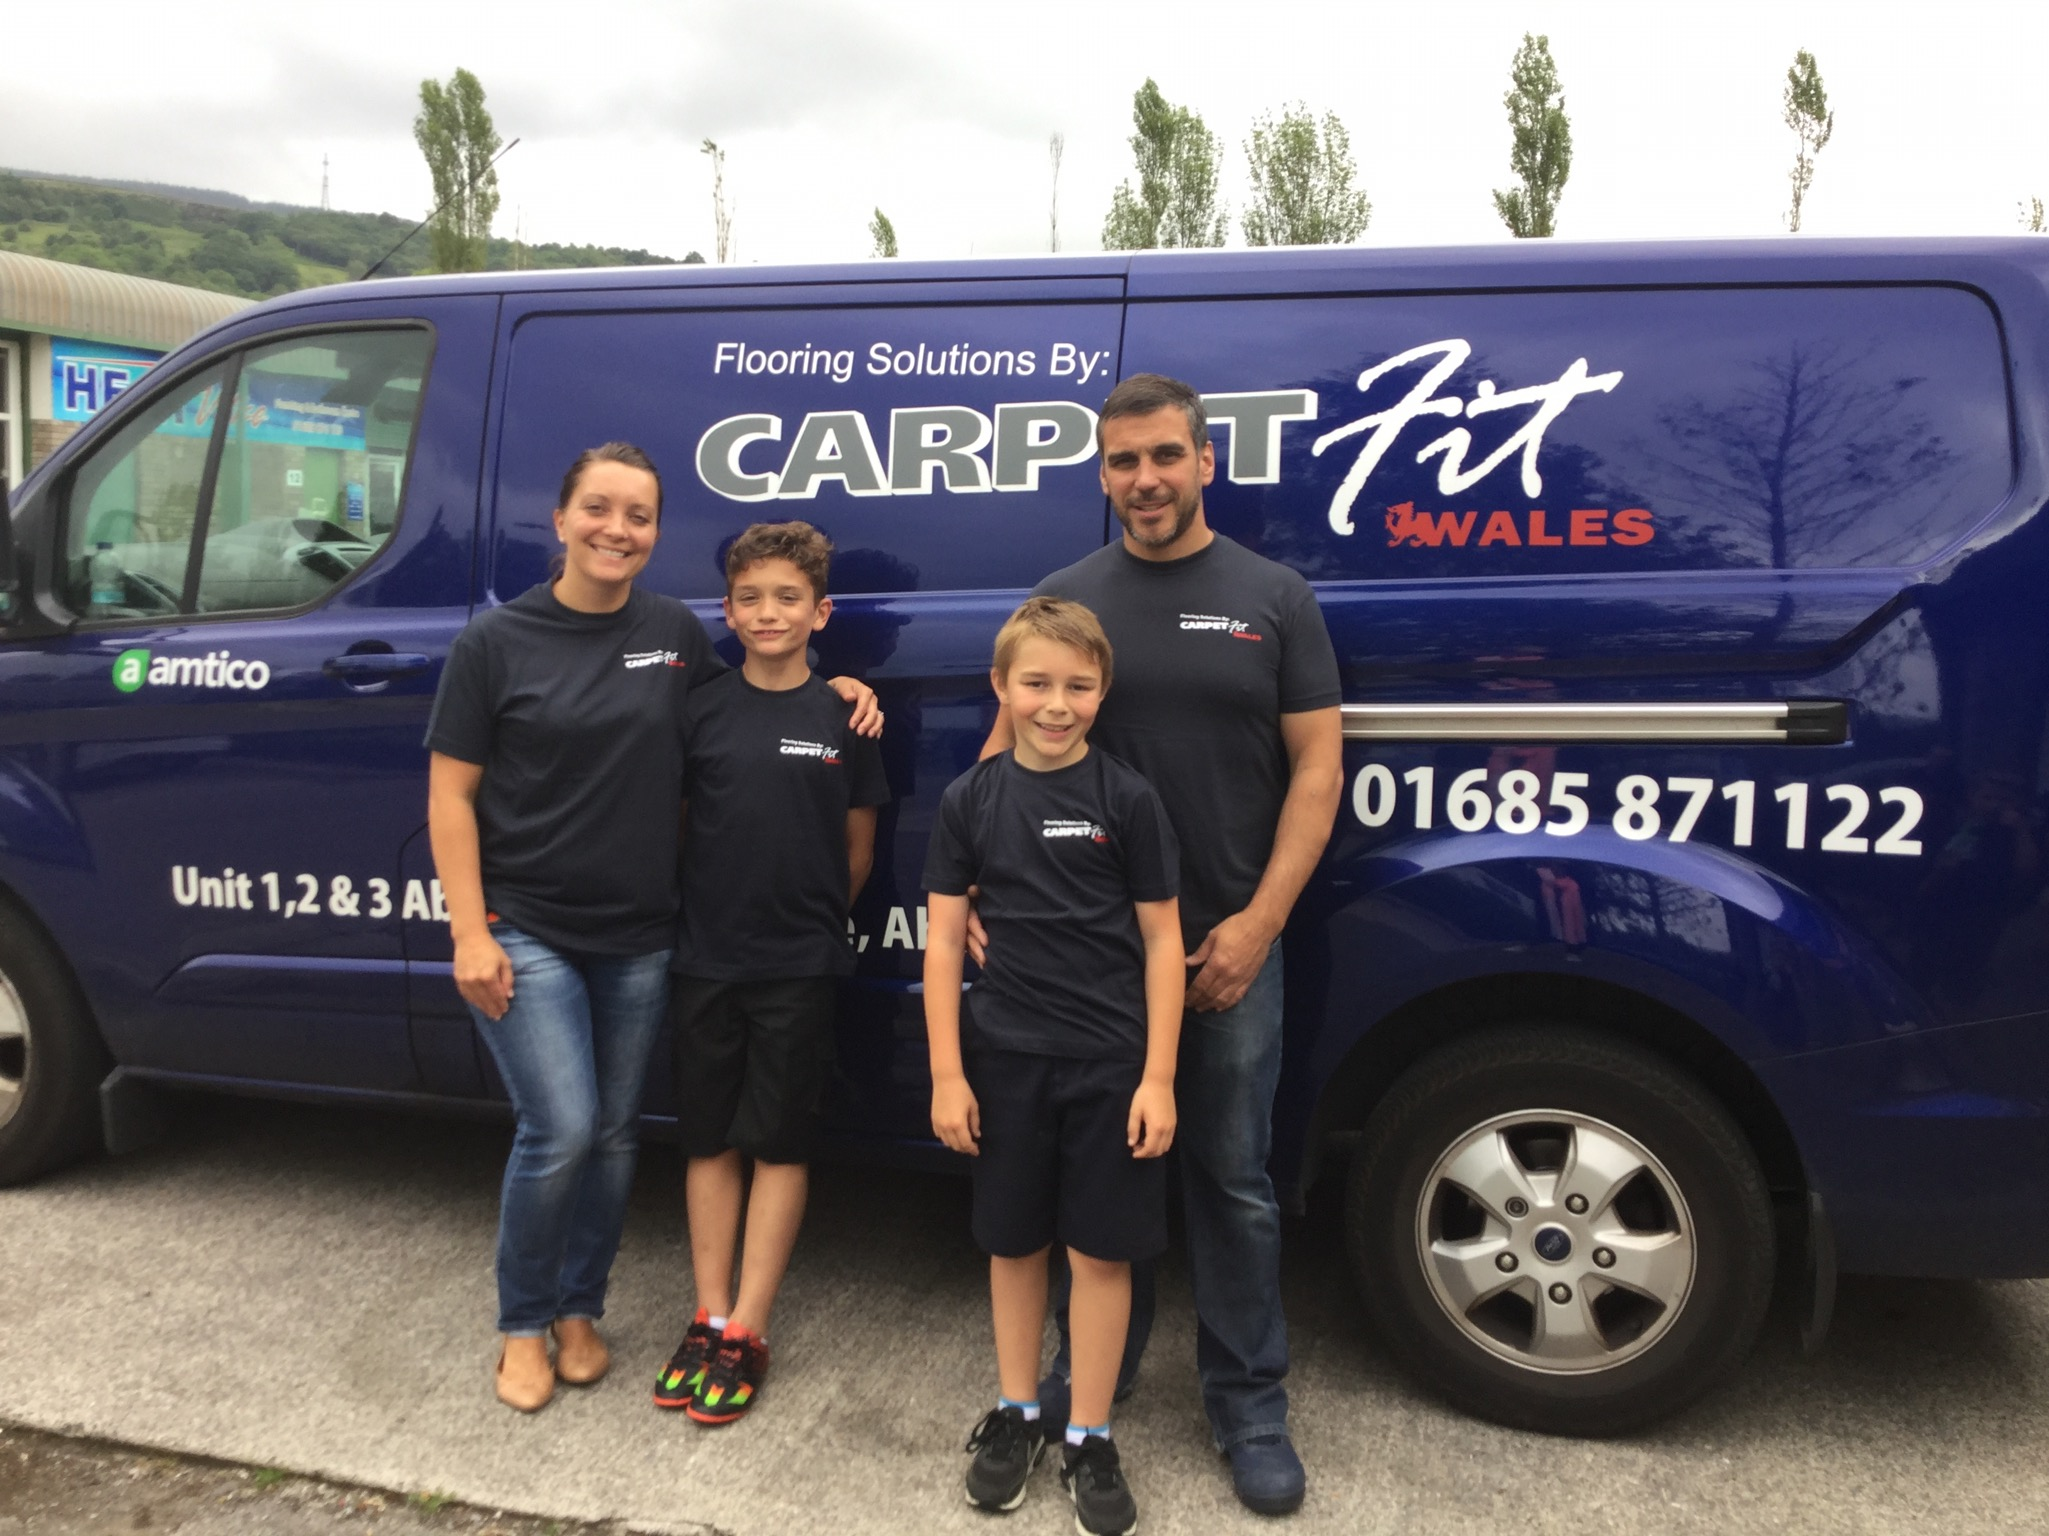 Carpet-Fit-Wales-Kids-Aberdare-South-Wales-Flooring-Carpets-LVT-Vinyl-Cleaning-Professional-Vicky-chris